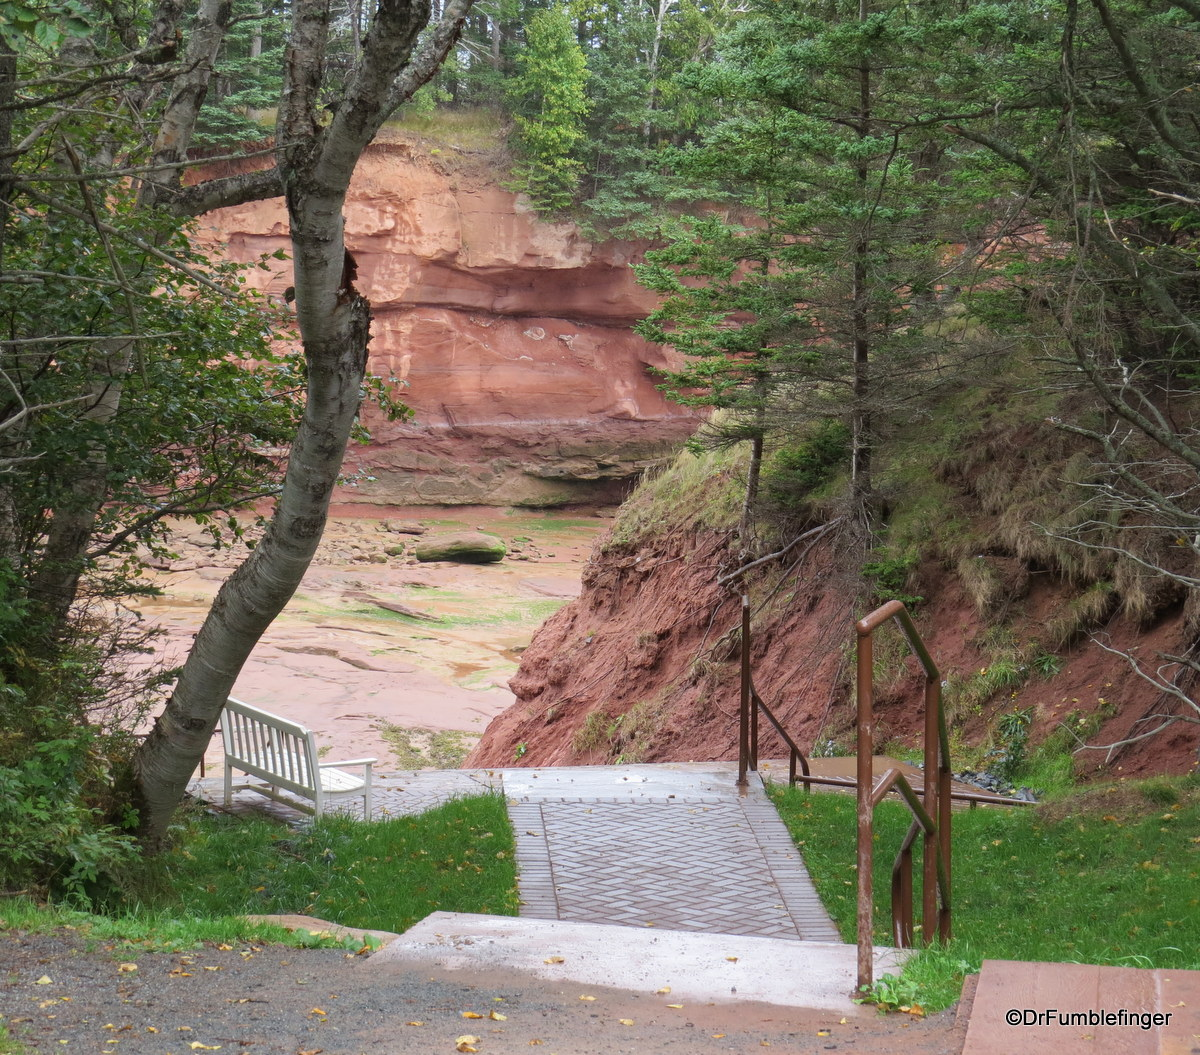 Stair leading to the ocean floor, Bay of Fundy